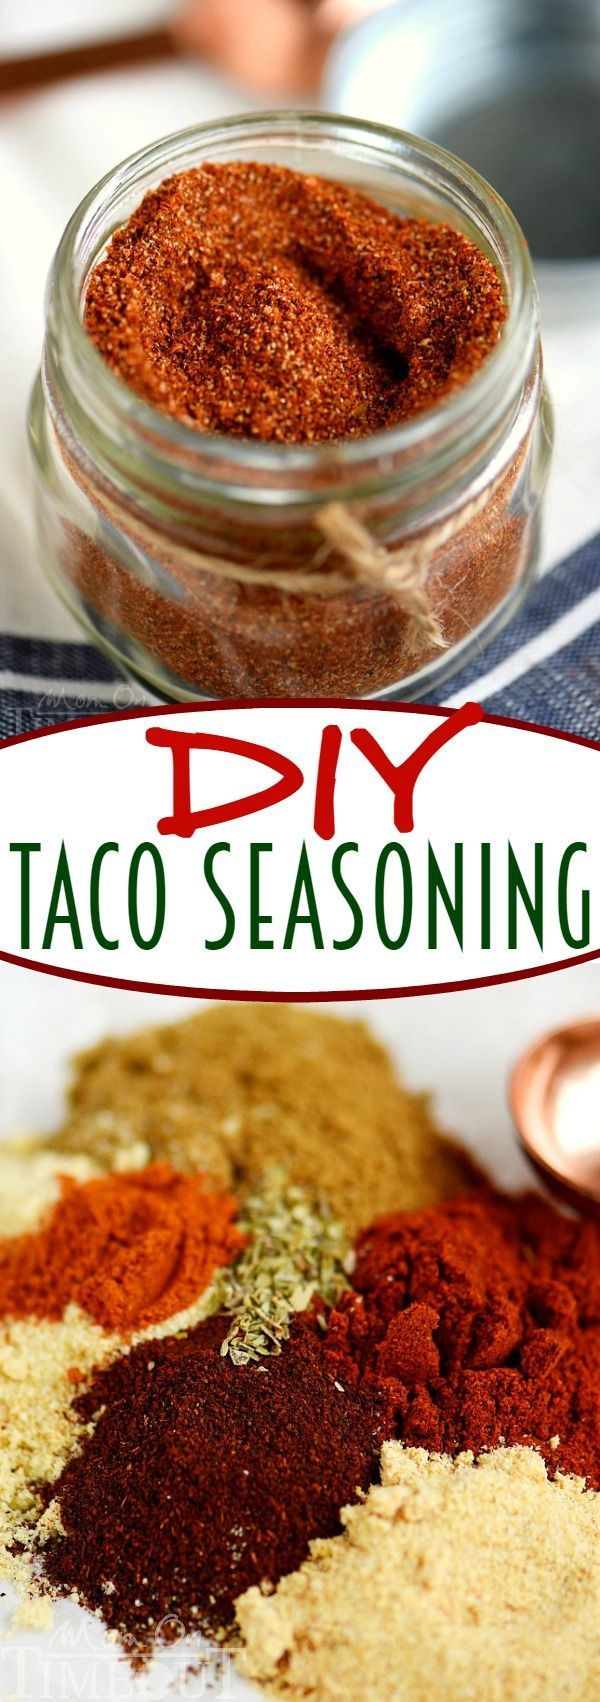 The recipe everyone needs in their dinner arsenal - DIY Taco Seasoning! Makes a great gift too! | eBay